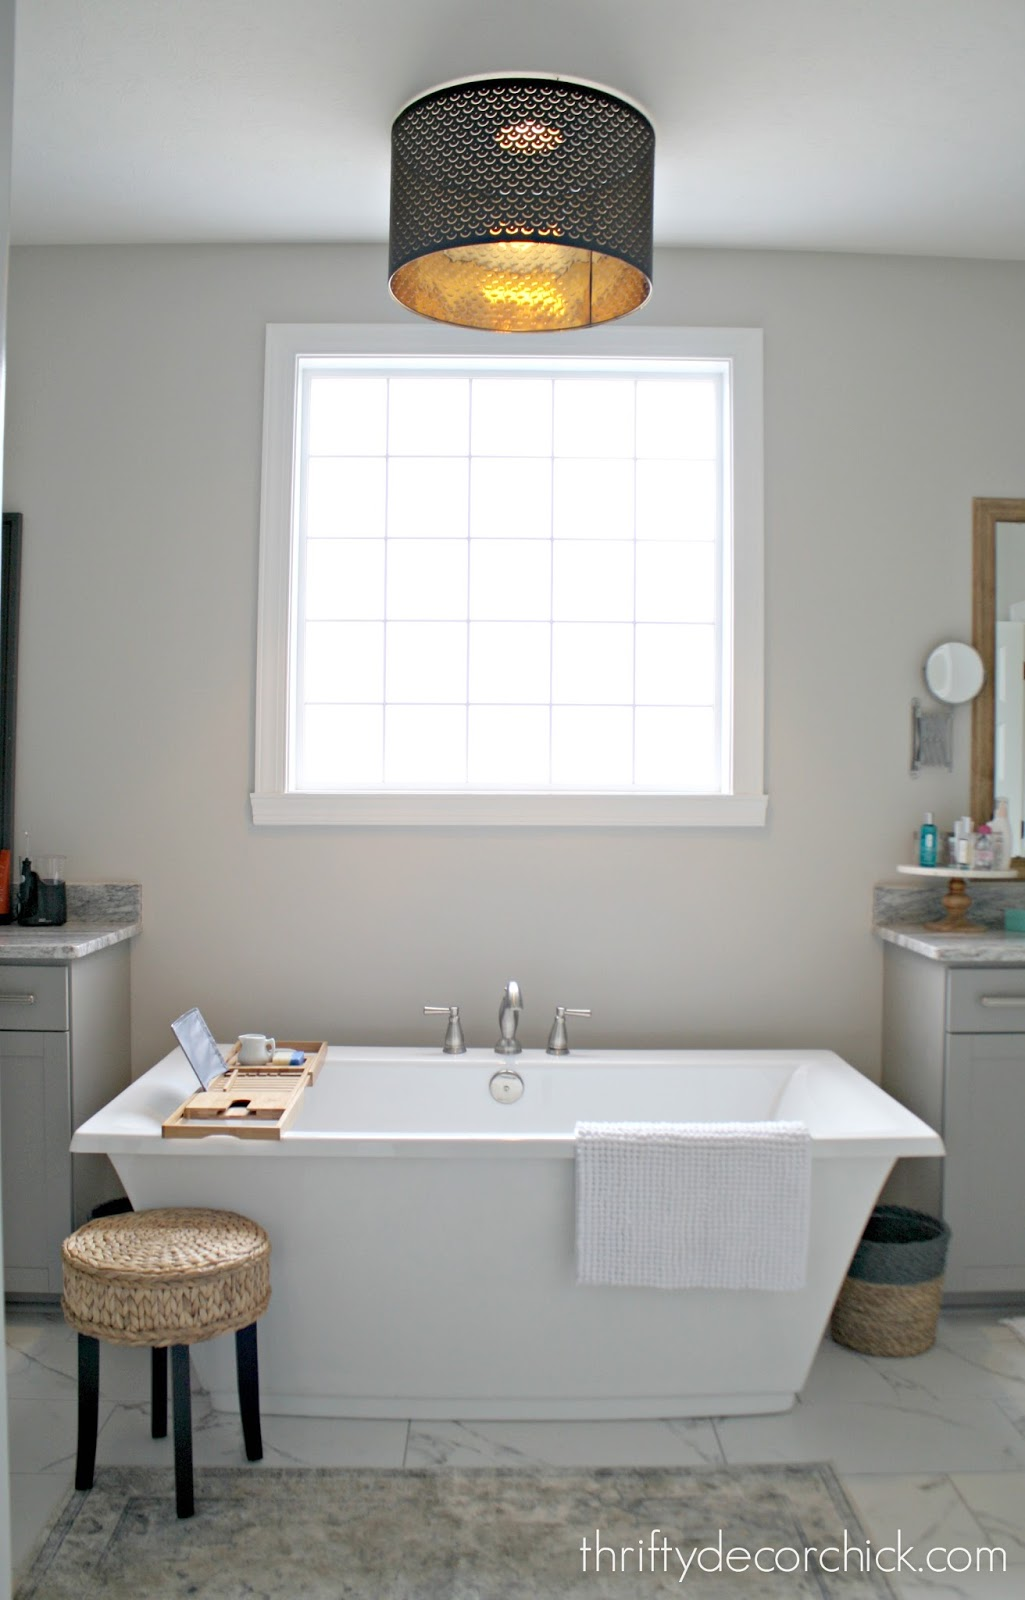 Black drum shade over tub